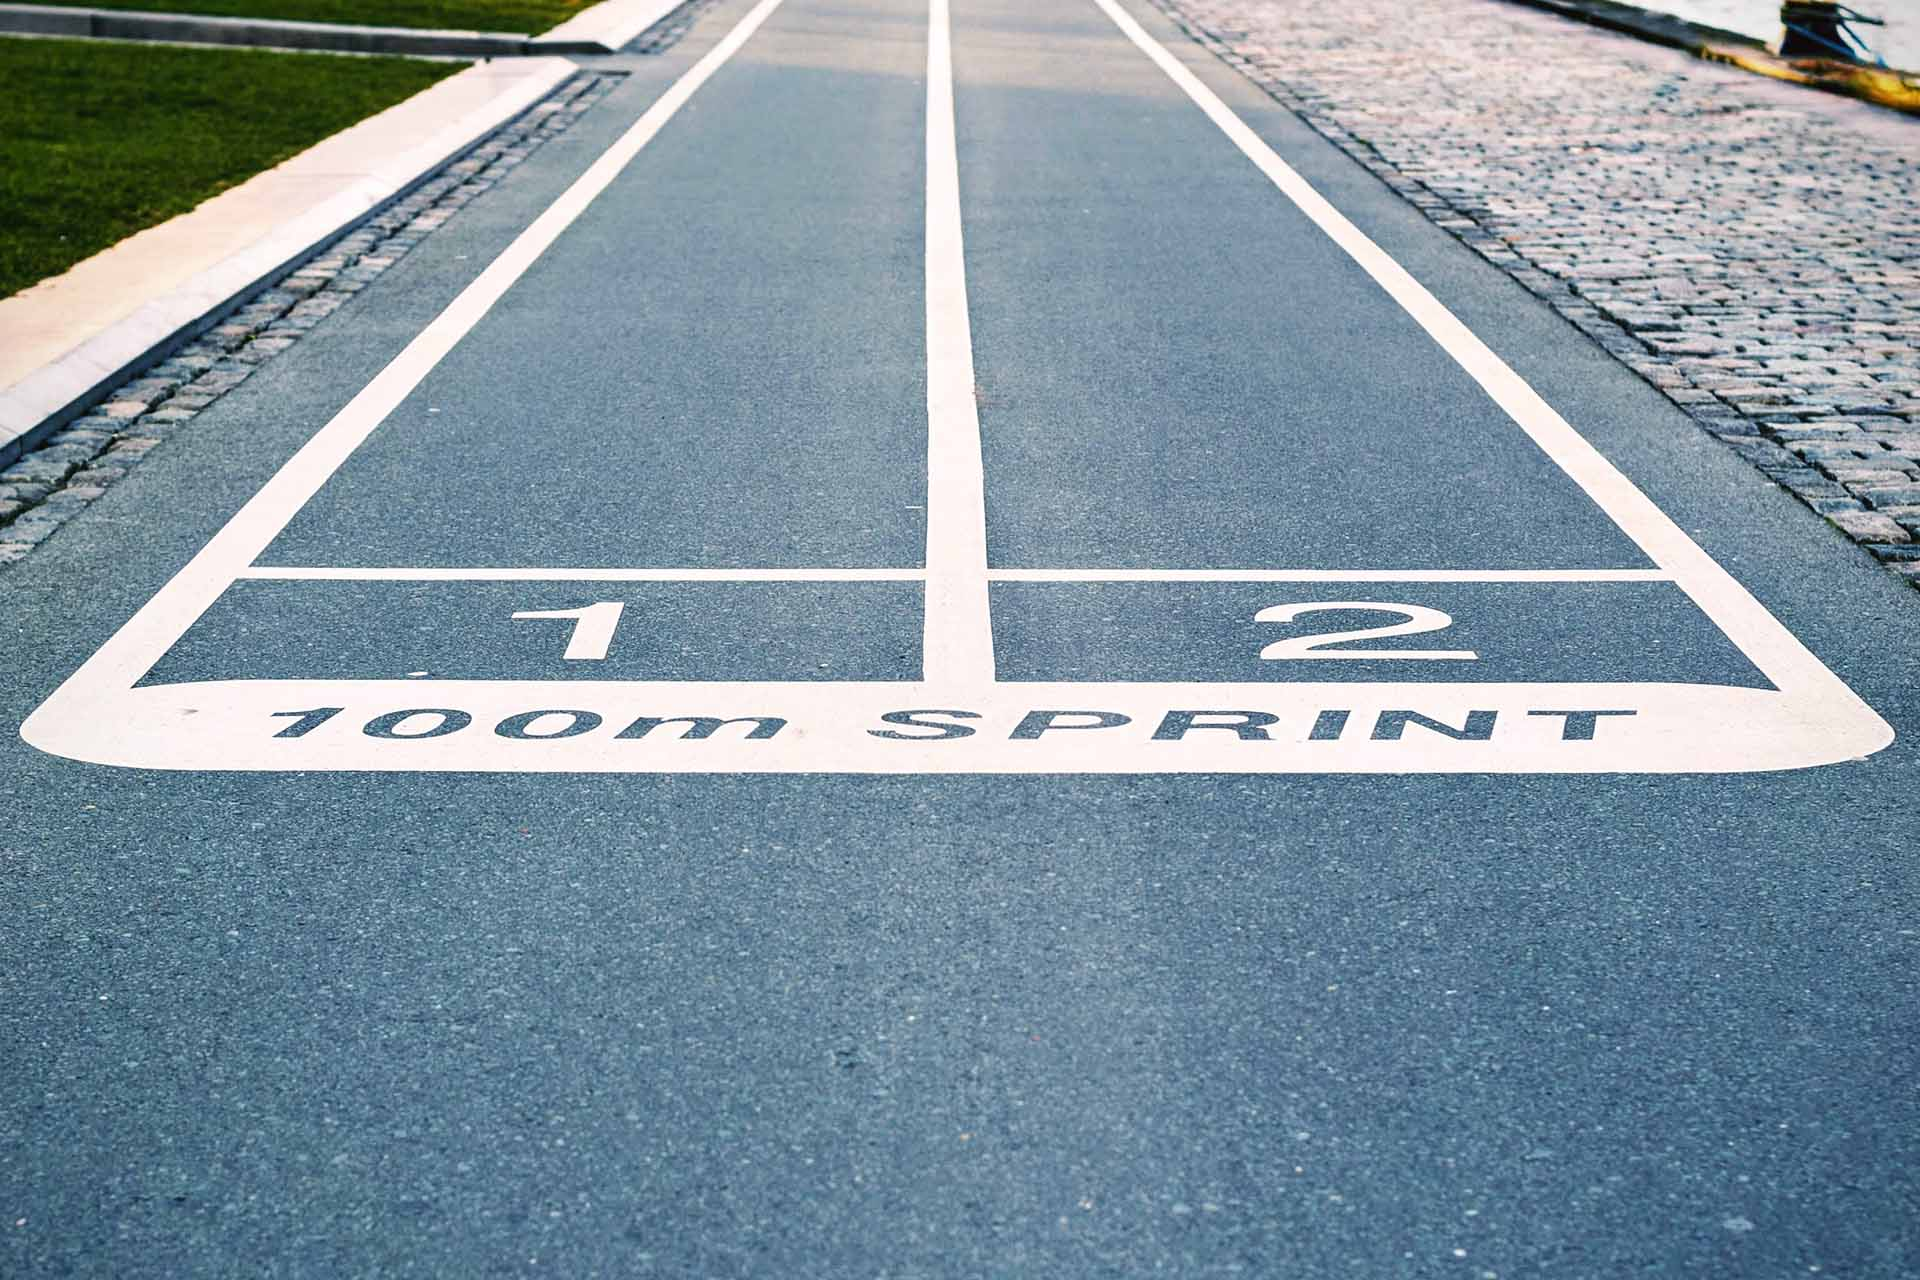 t2informatik Blog: Is agility the solution to all problems?